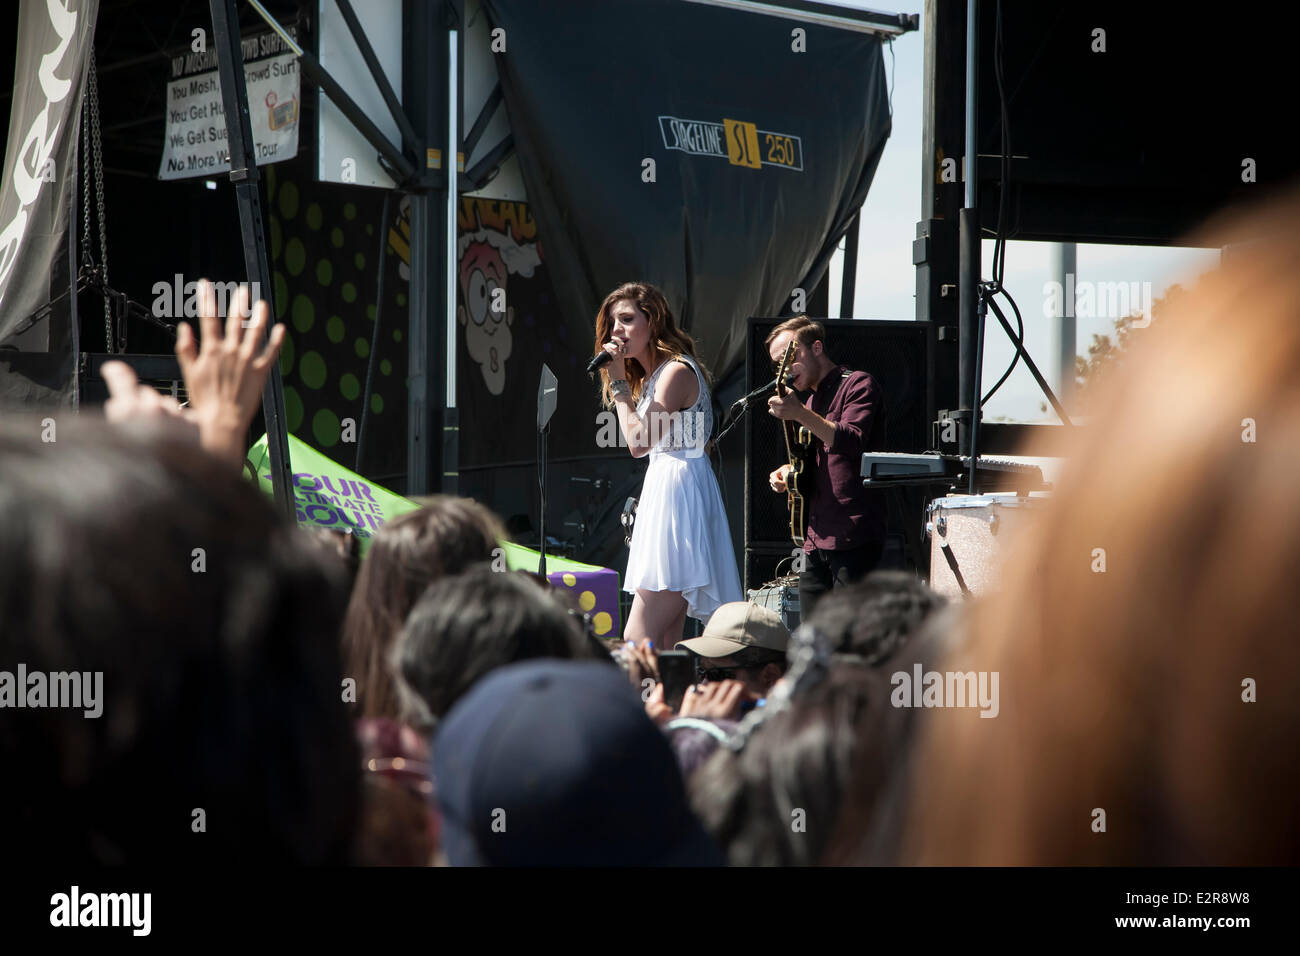 Pomona, CA, USA. 20th June, 2014. Echosmith performs at the Vans Warped Tour. Thousands of young alternative music - Stock Image